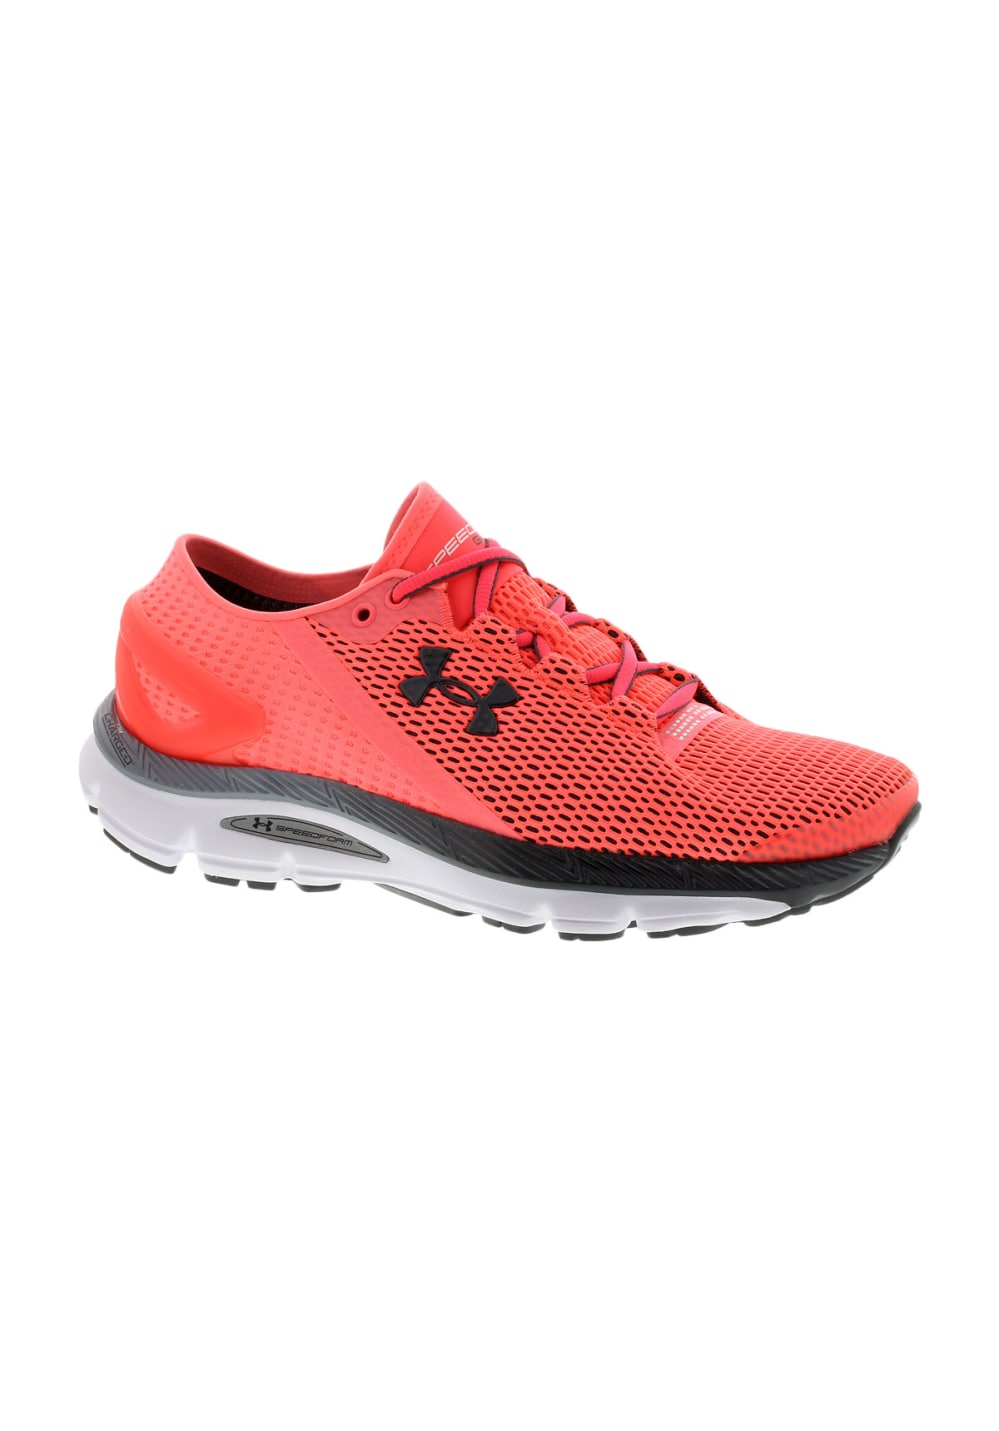 low priced 9debf 02327 Under Armour Speedform Gemini 2.1 - Running shoes for Women - Red